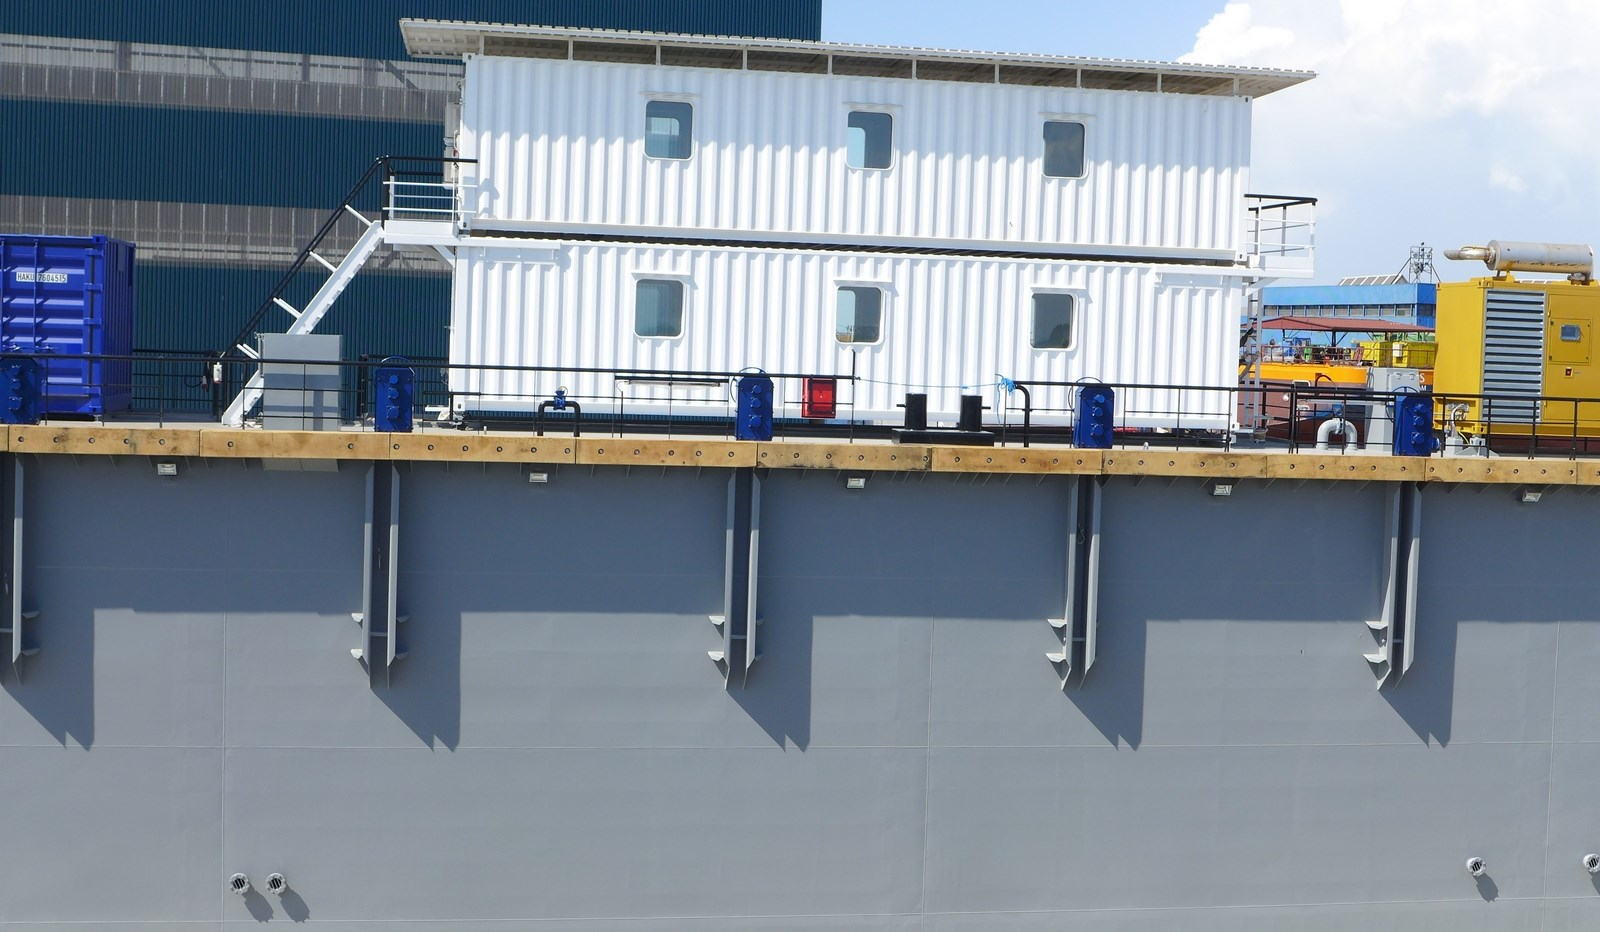 Modular Floating Drydock 11026 is for vessels up to 5 000